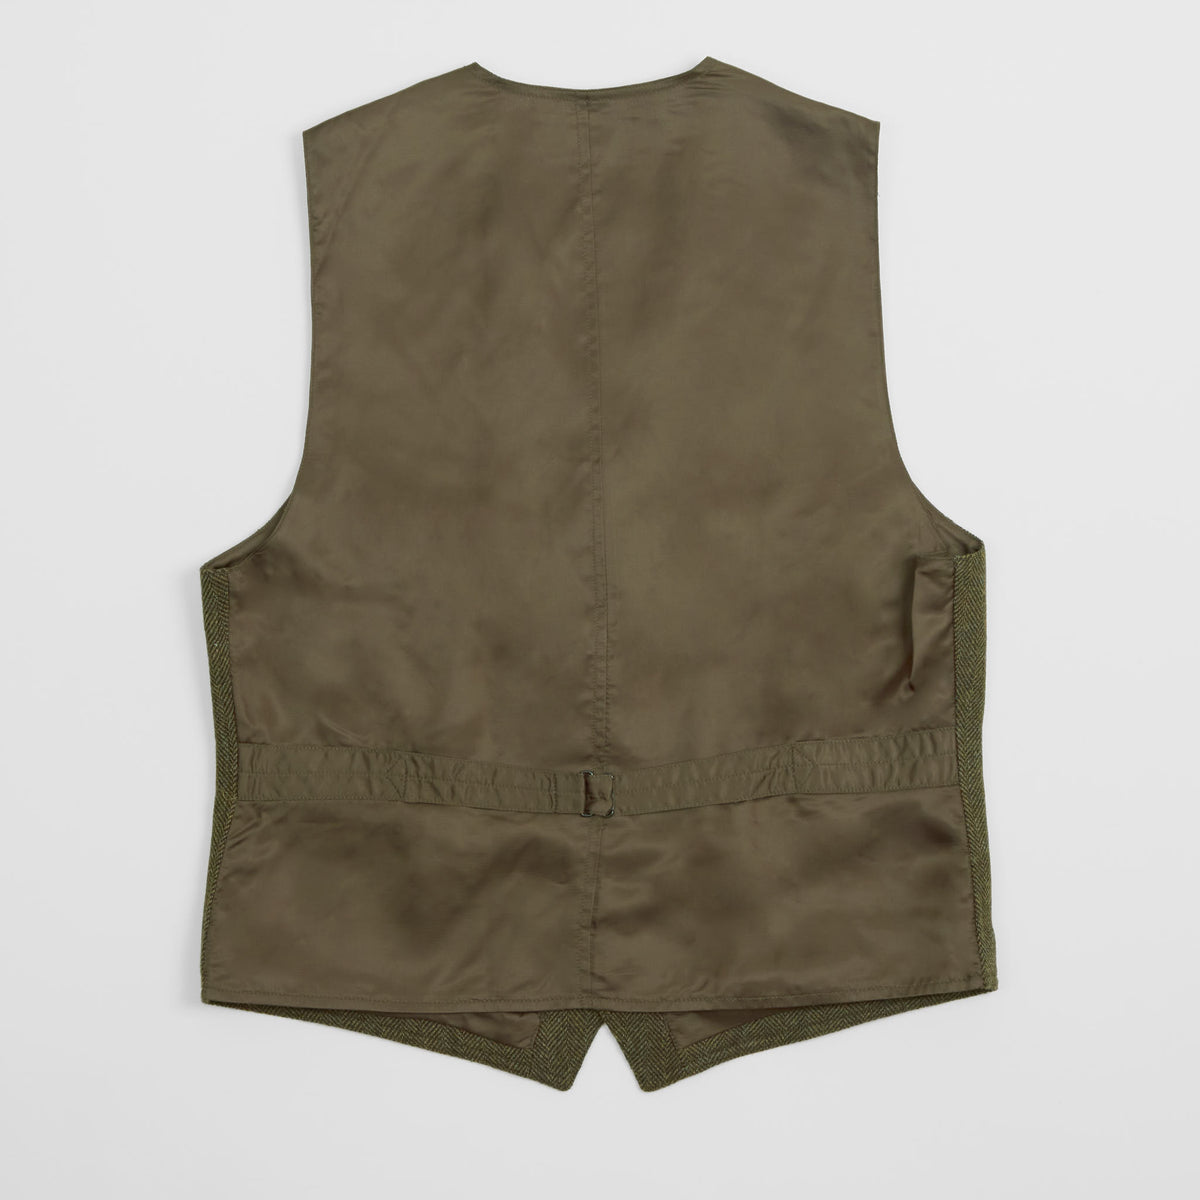 Double RL Laverstock Wool Dress Vest